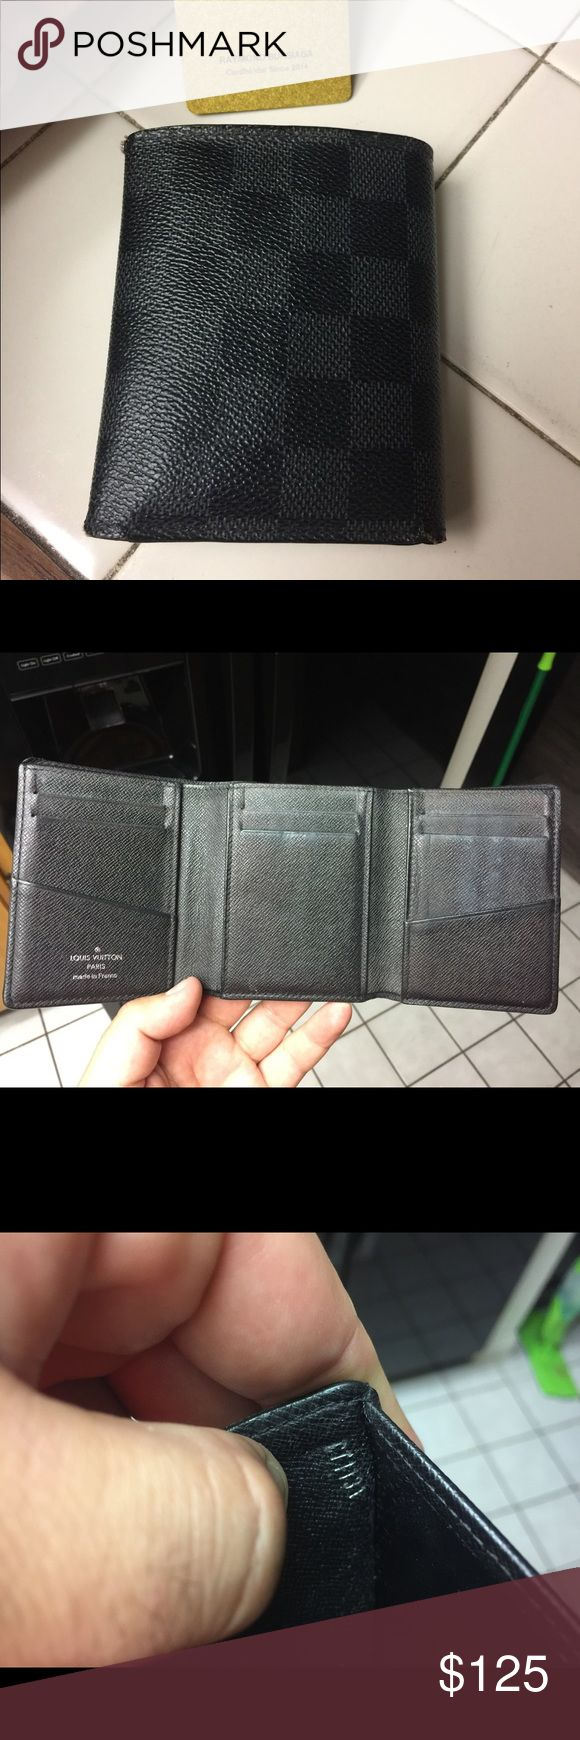 100% authentic LV Graphite Damier Trifold wallet Purchased at the LV store in Costa Mesa (South coast plaza) in So. Calif. It is used but has lots of life left. Purchased at retail between $520-$540. Louis Vuitton Accessories Key & Card Holders